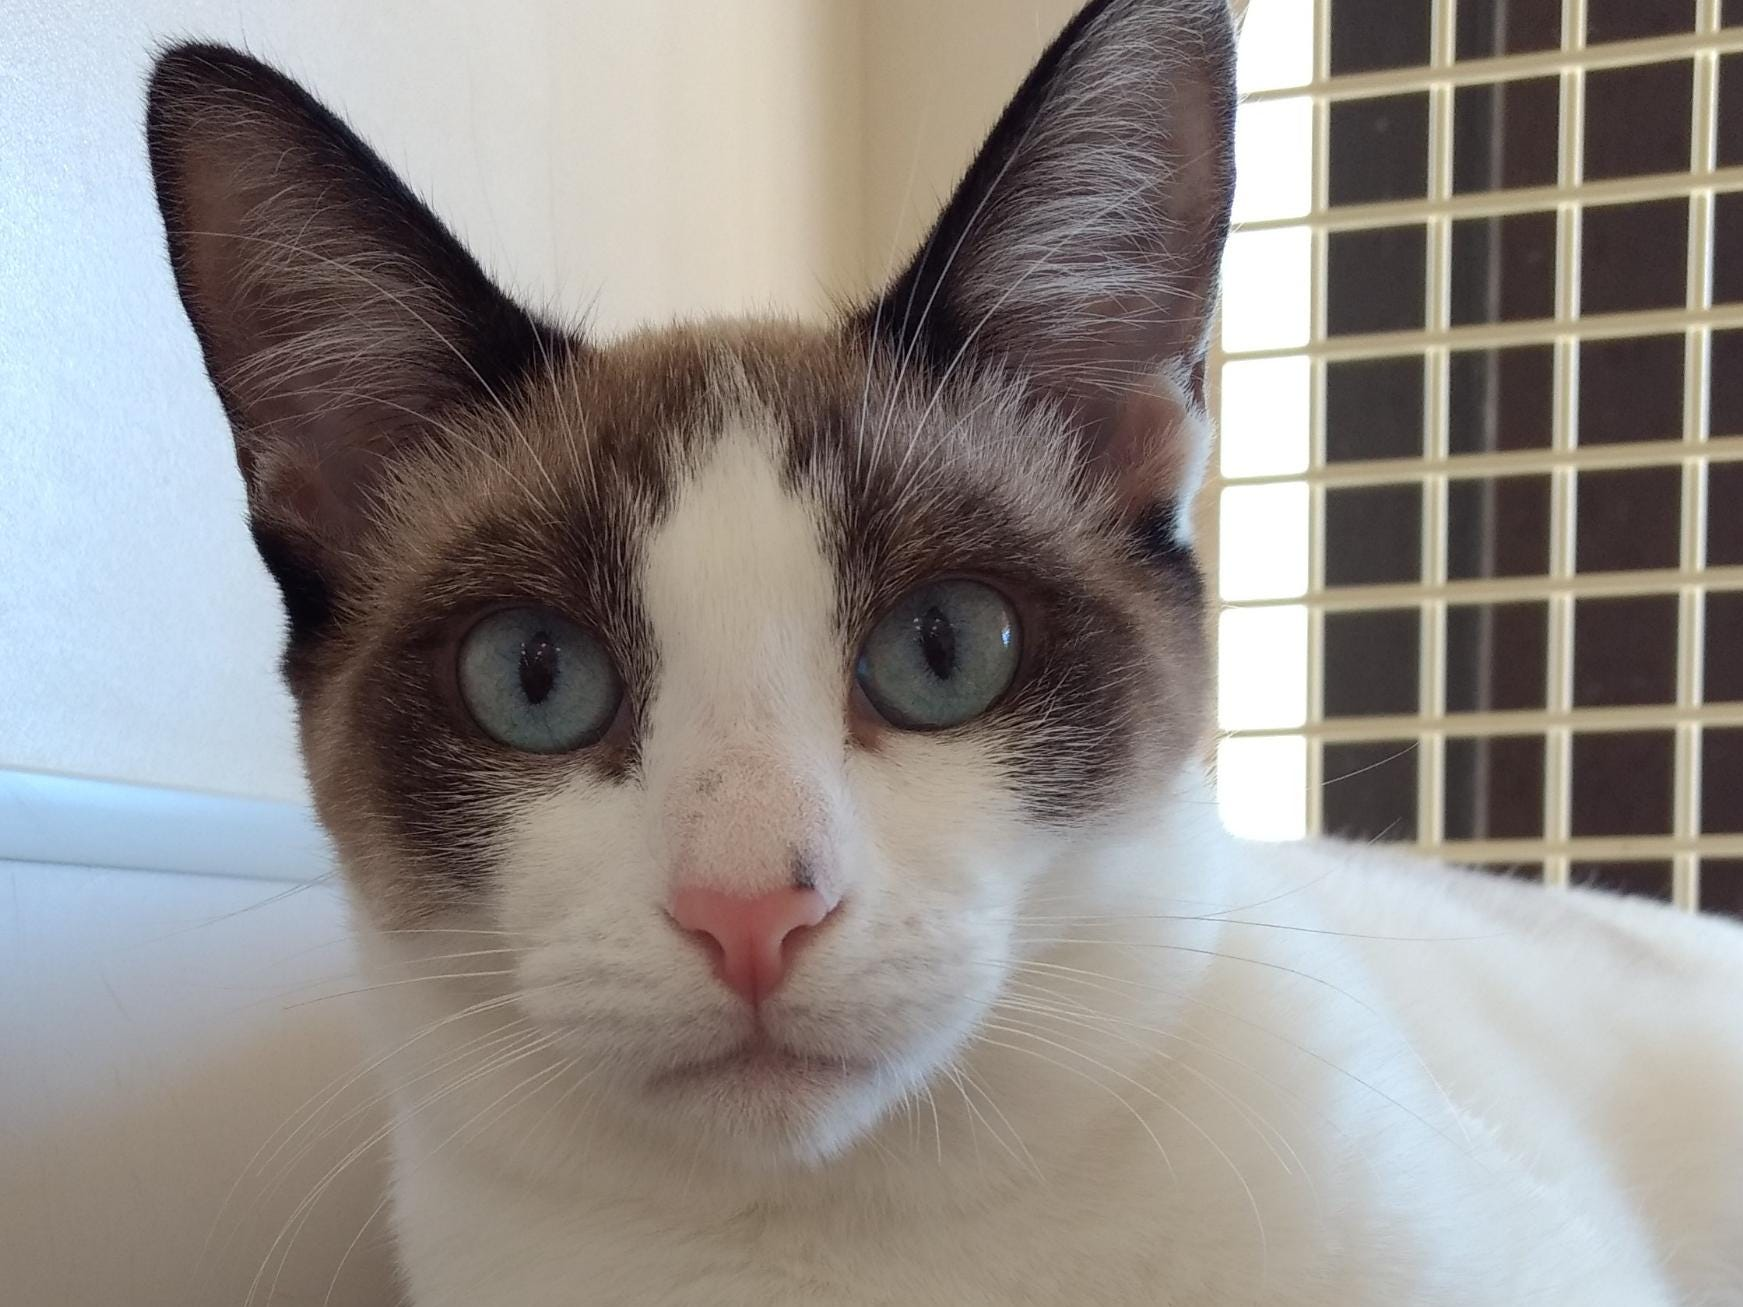 Meghan Markle is an 8-month-old Siamese mix kitten. She gets along with other cats and is a sweet, calm and gentle kitty. All animal adoptions include spaying or neutering and vaccinations. Apply with Another Chance Animal Welfare League at www.acawl.org. Call 356-0698.